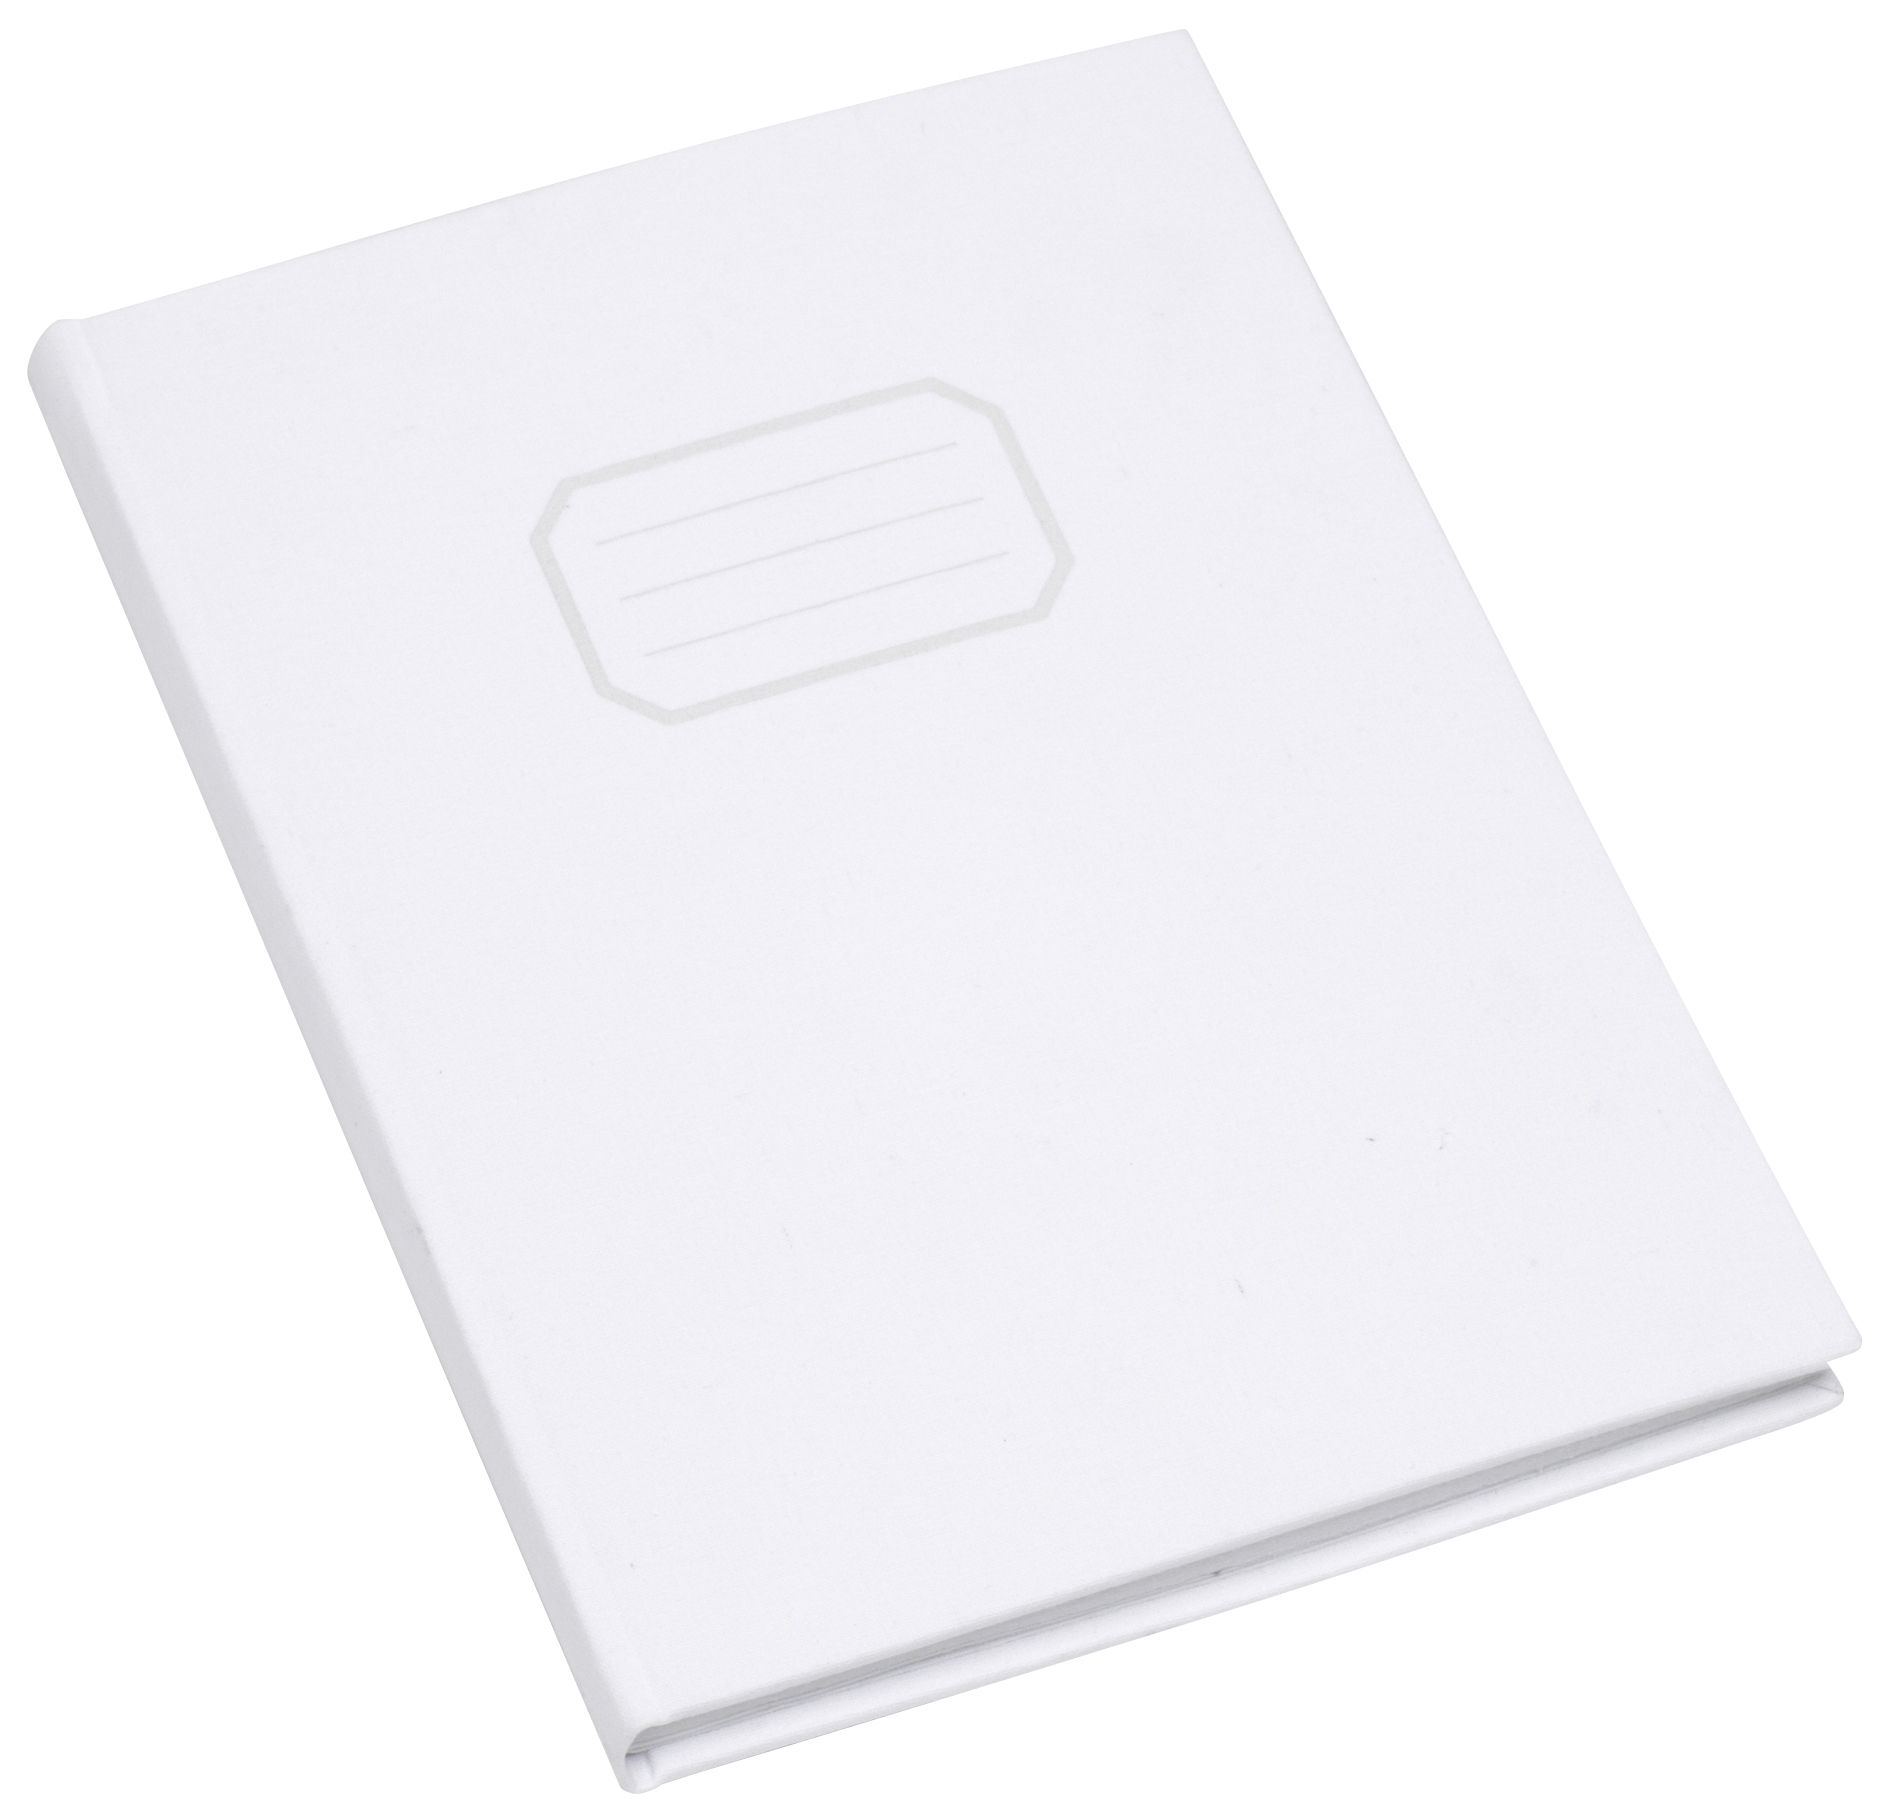 Accessories - Pens & Notebooks - Exercise book by L'atelier d'exercices - White - Cotton